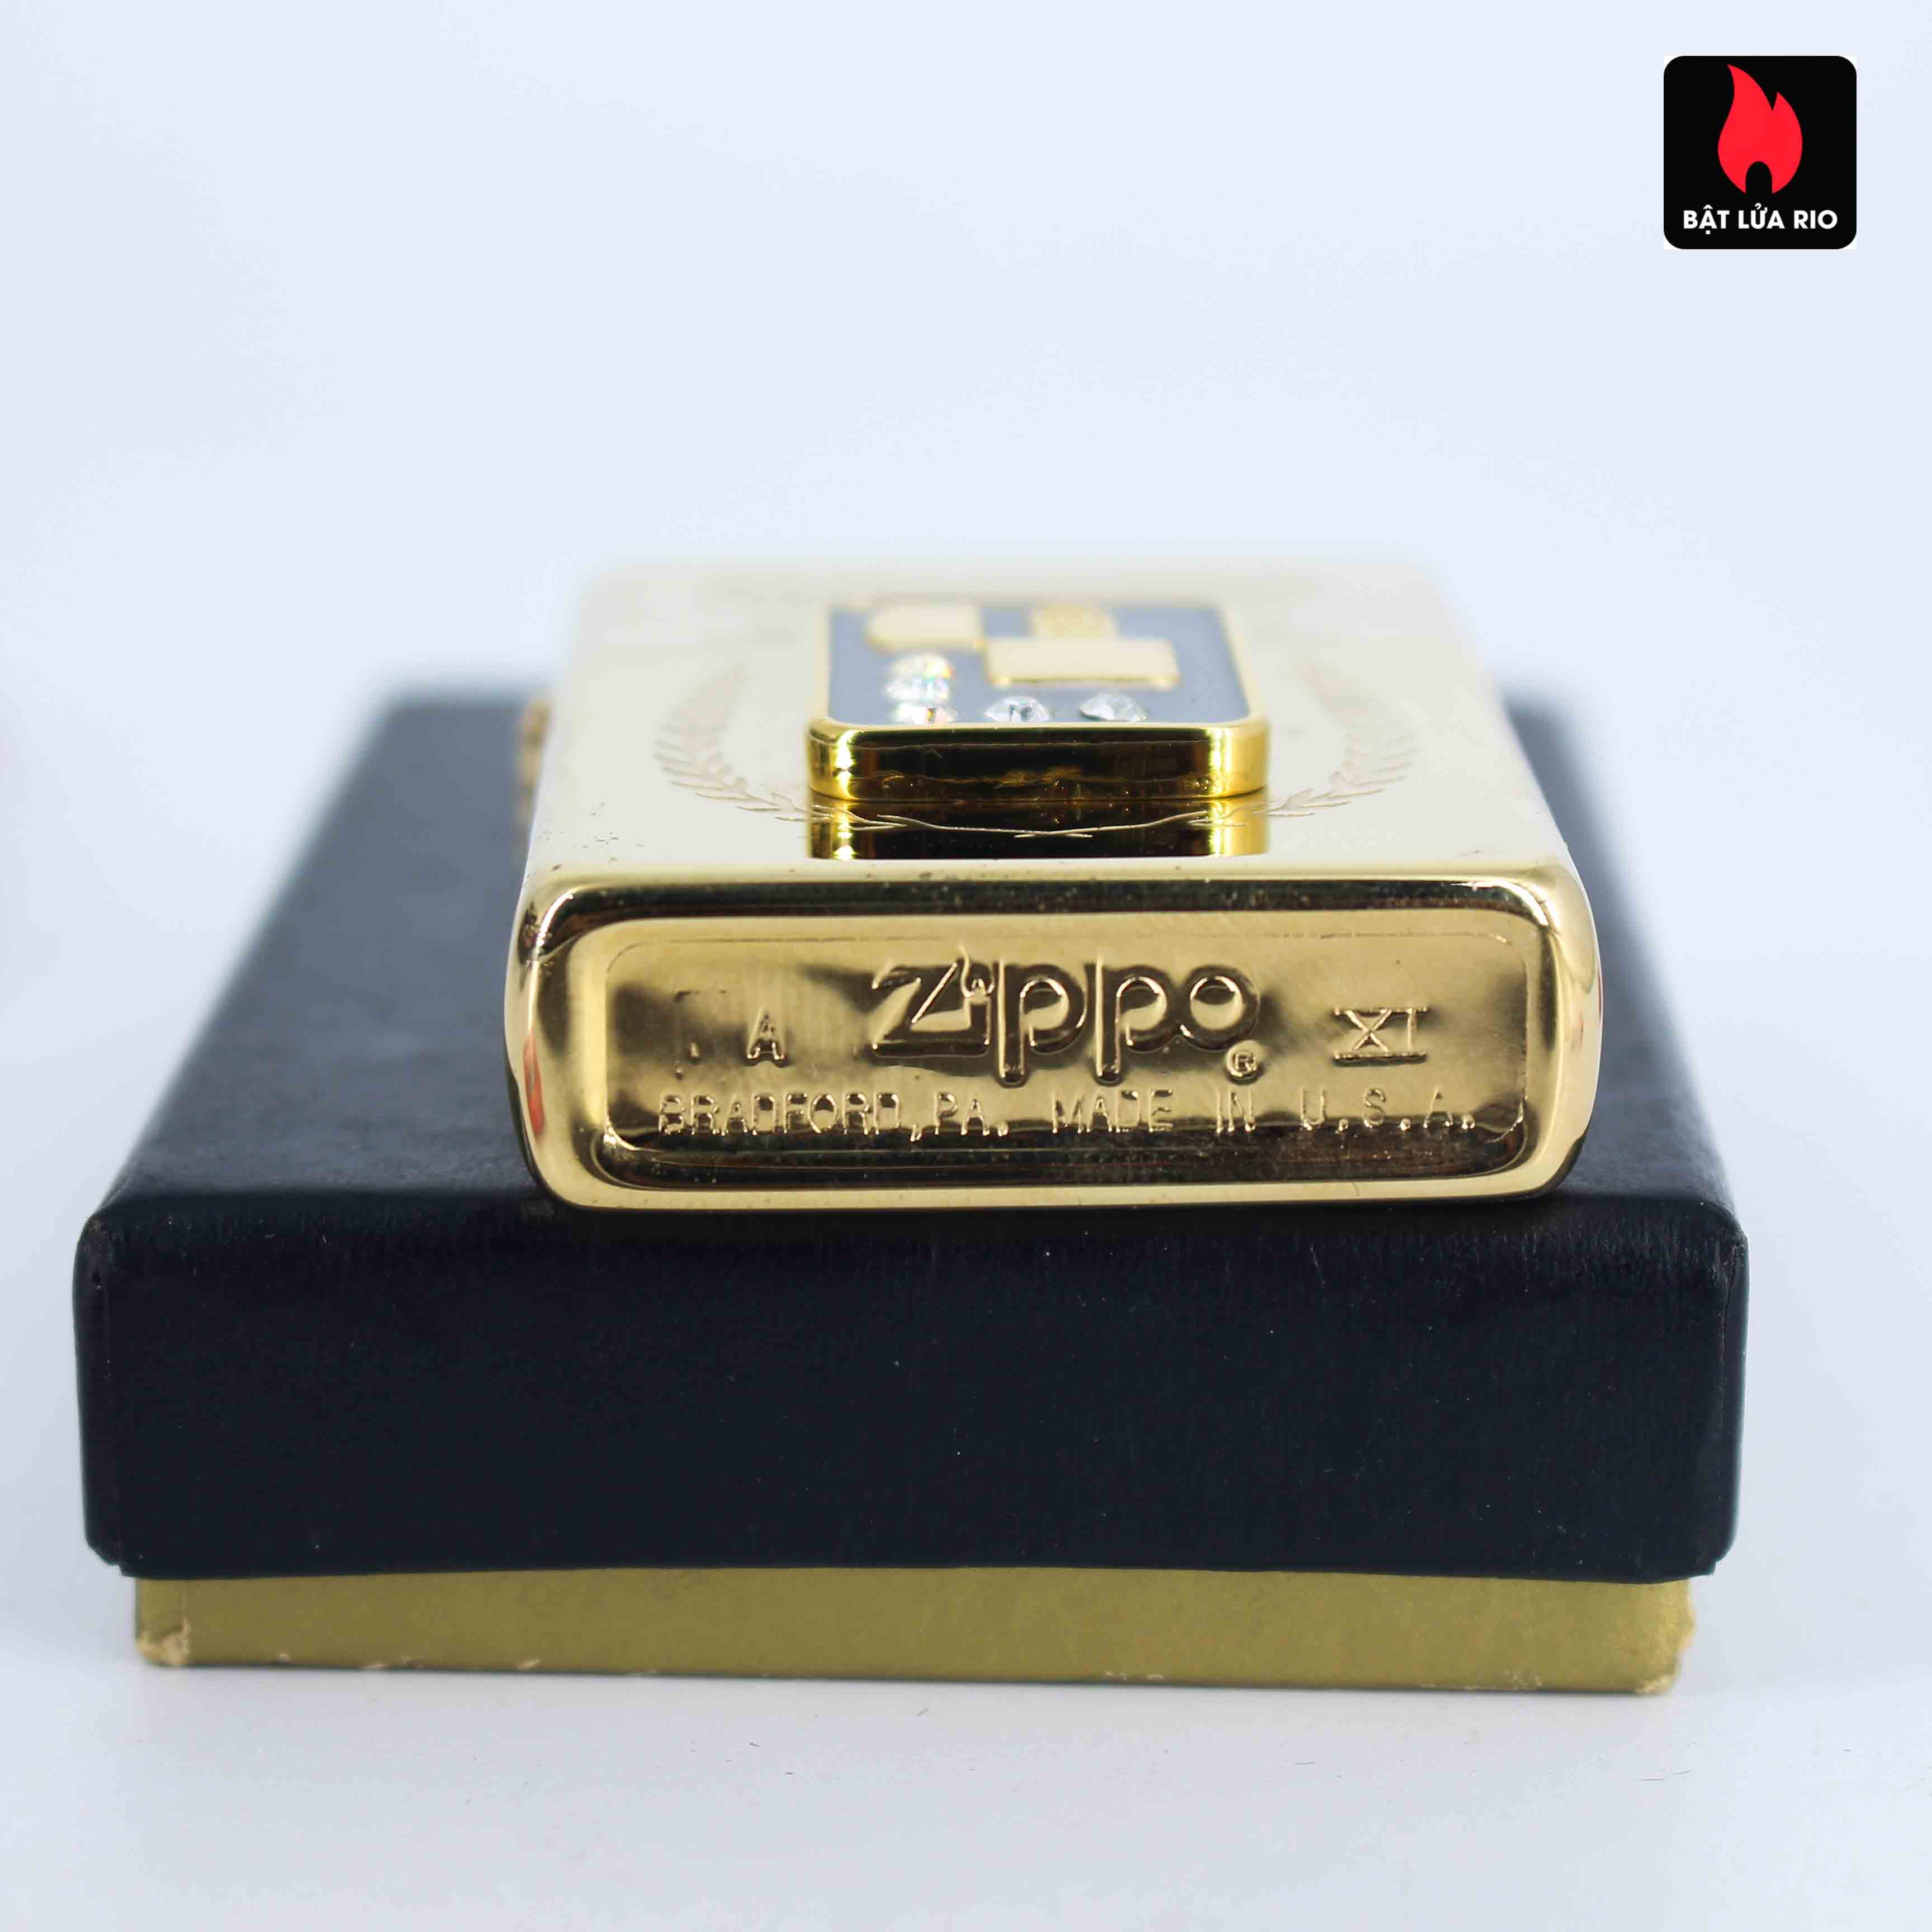 Zippo La Mã 1995 - 50th Anniversary Of The And Of The Battle Of Okinawa WWII 1945-1995 6